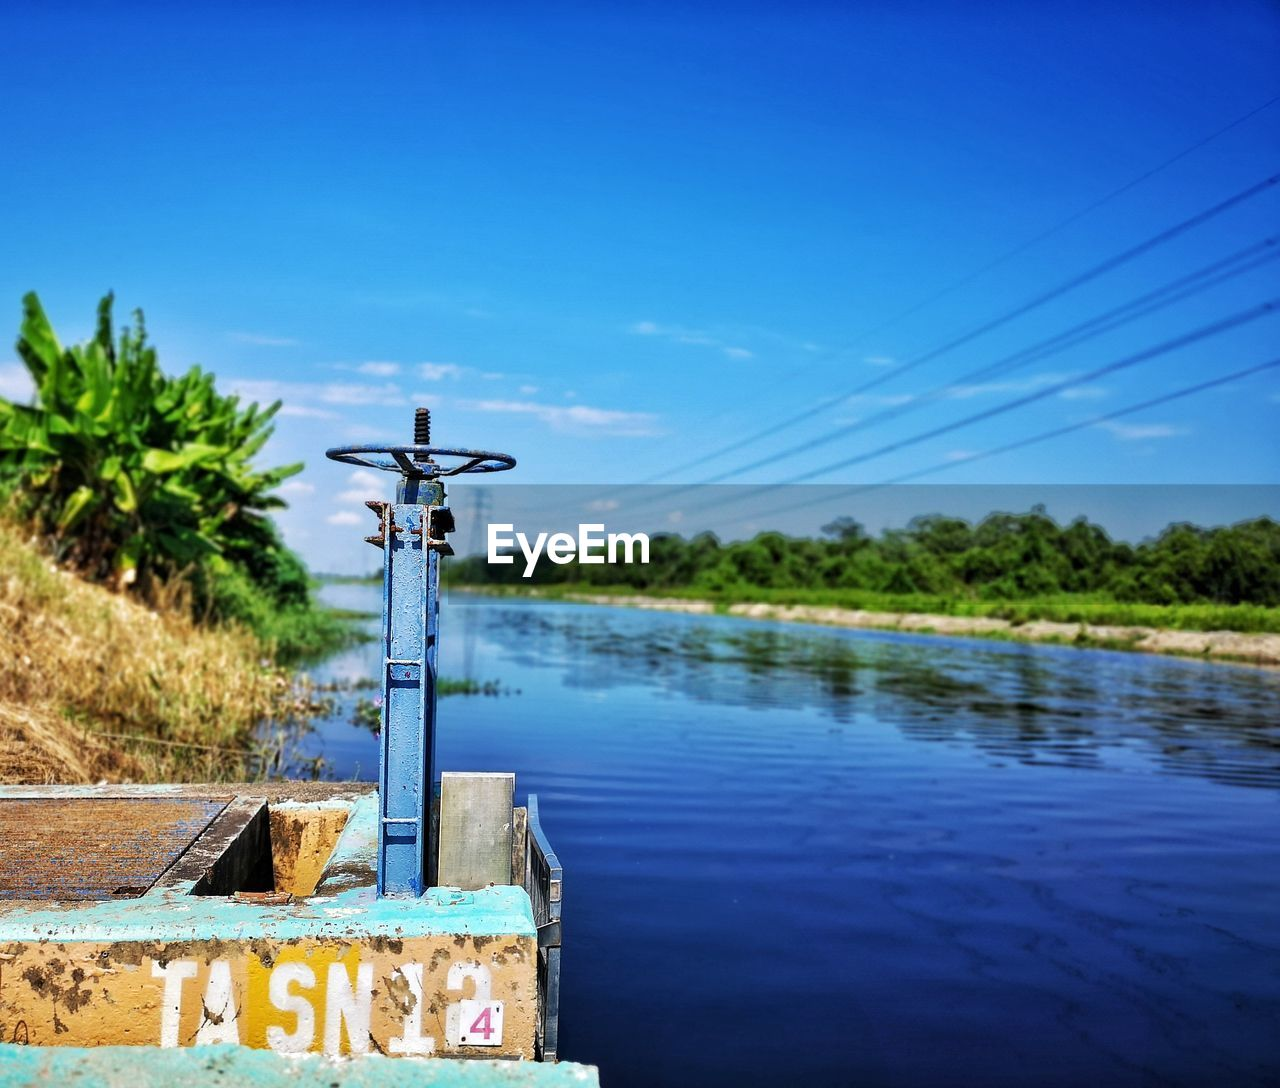 water, sky, nature, blue, plant, no people, day, tree, metal, outdoors, lake, growth, clear sky, land, focus on foreground, beauty in nature, field, tranquility, sunlight